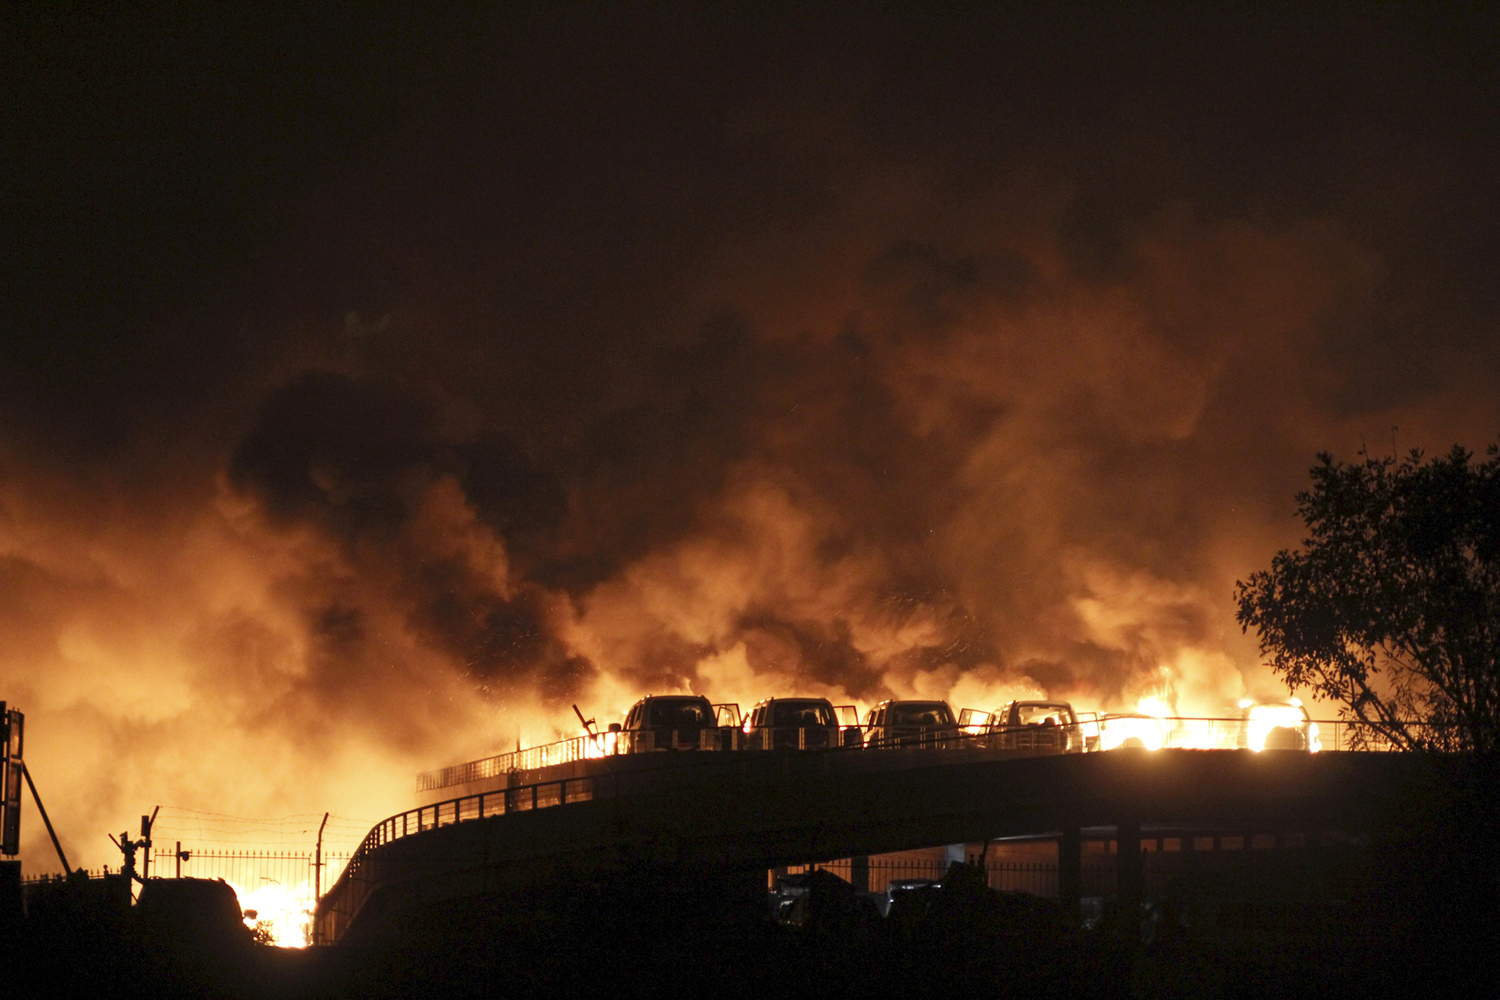 Massive Explosions in Tianjin, China_02